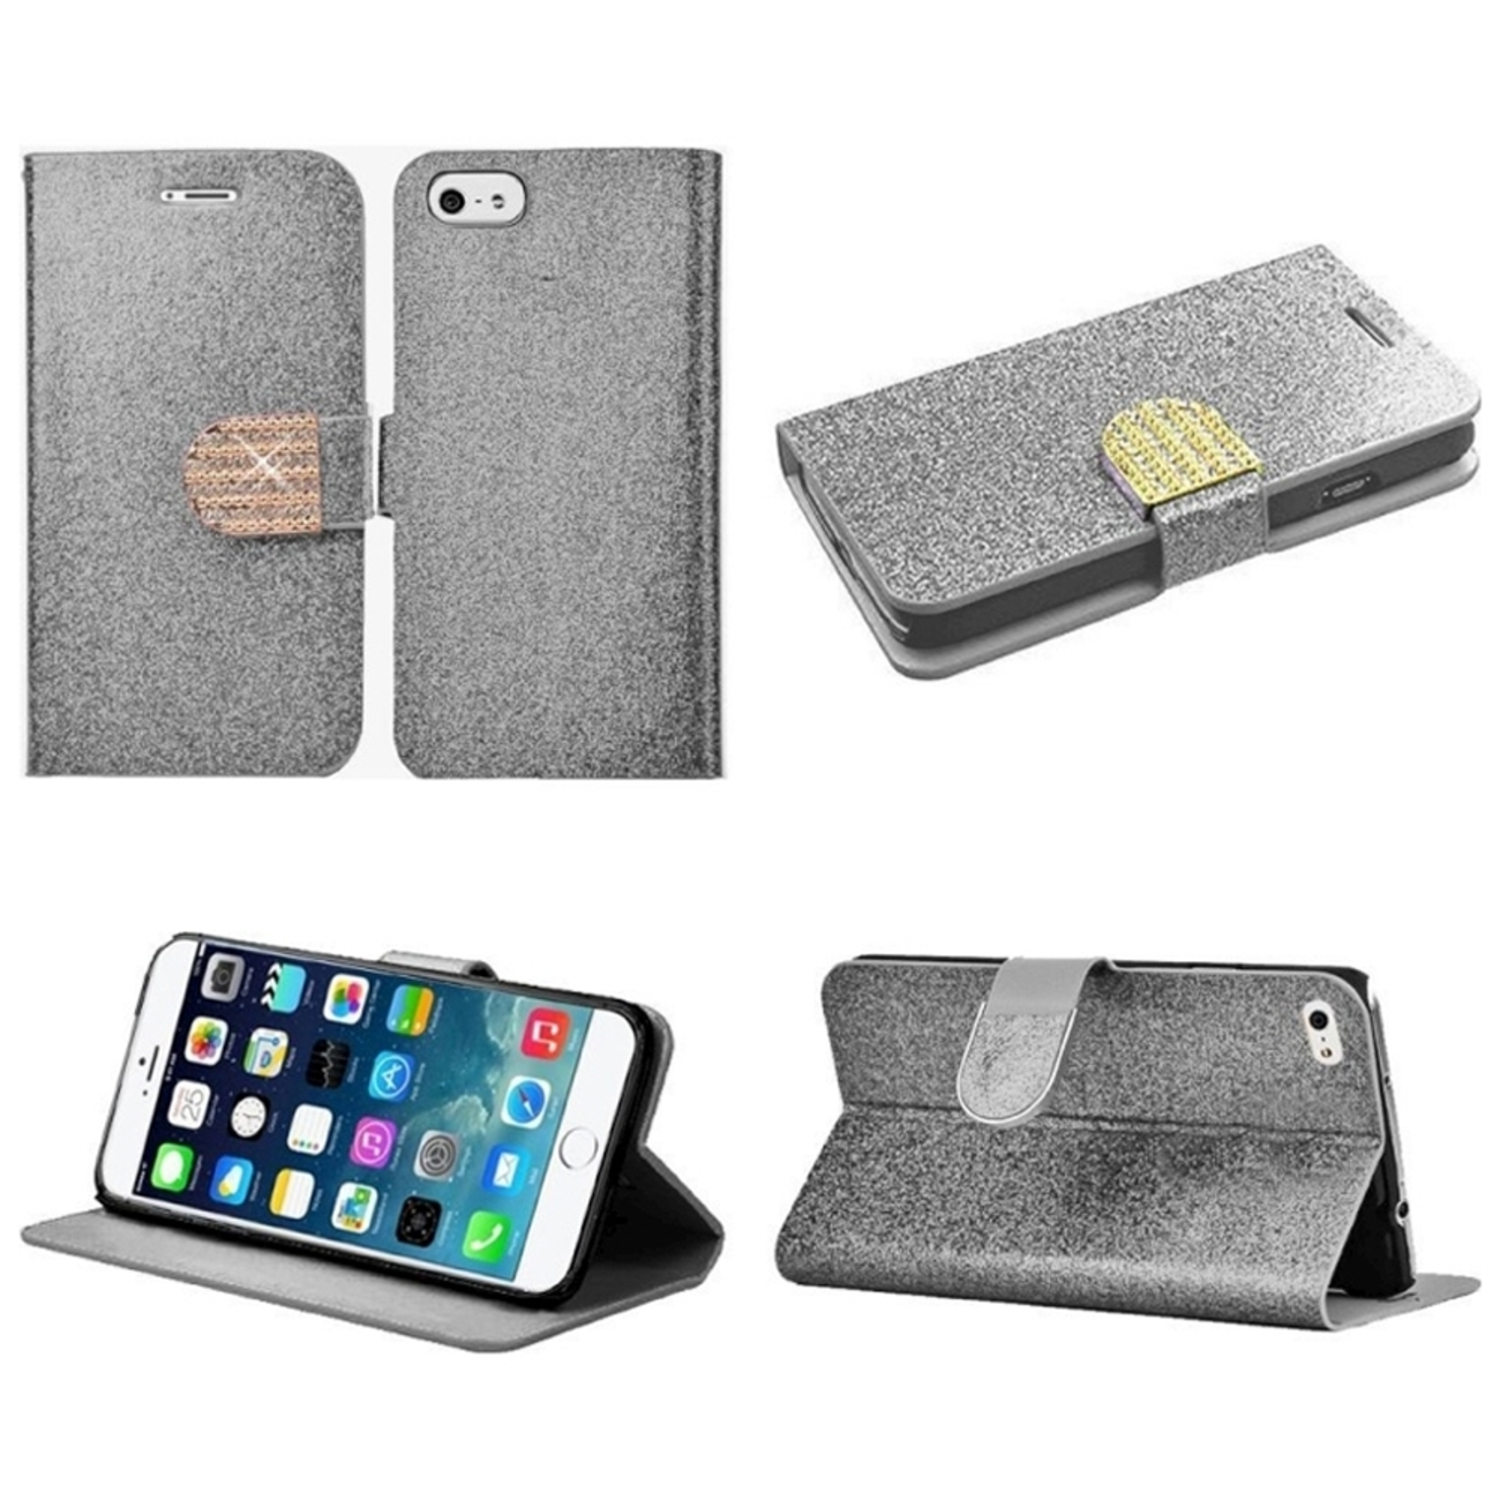 "Insten Flip Leather Glitter Cover Case w/stand/card holder/Diamond For iPhone 6 Plus / 6S Plus 5.5"" - Silver/Gold"